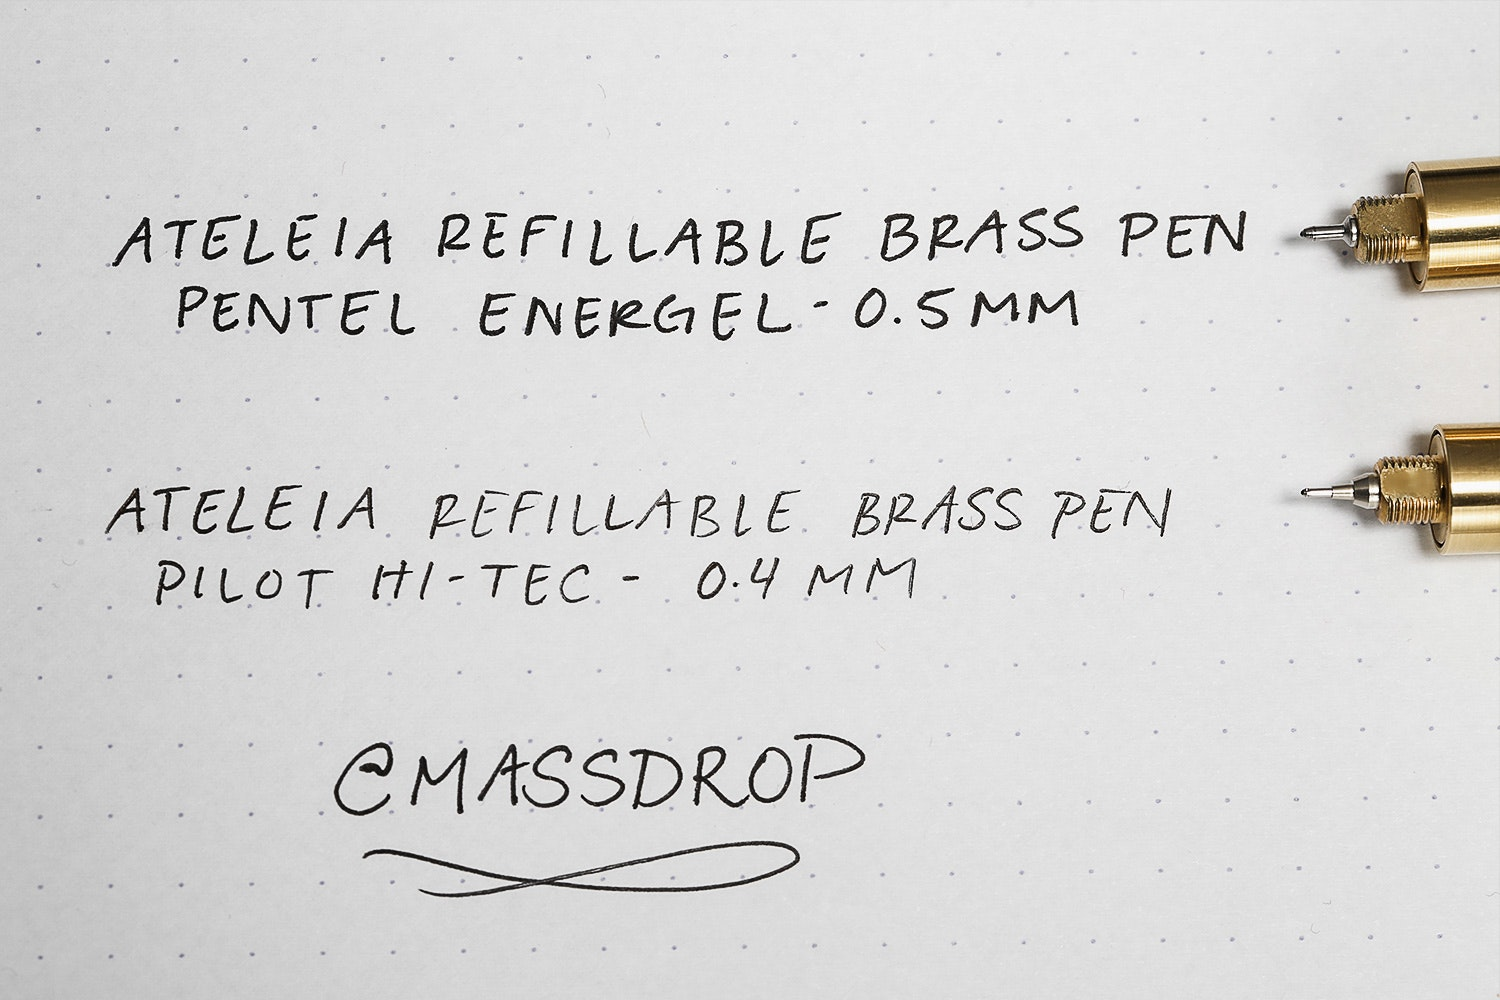 ATELEIA Refillable Brass Pen